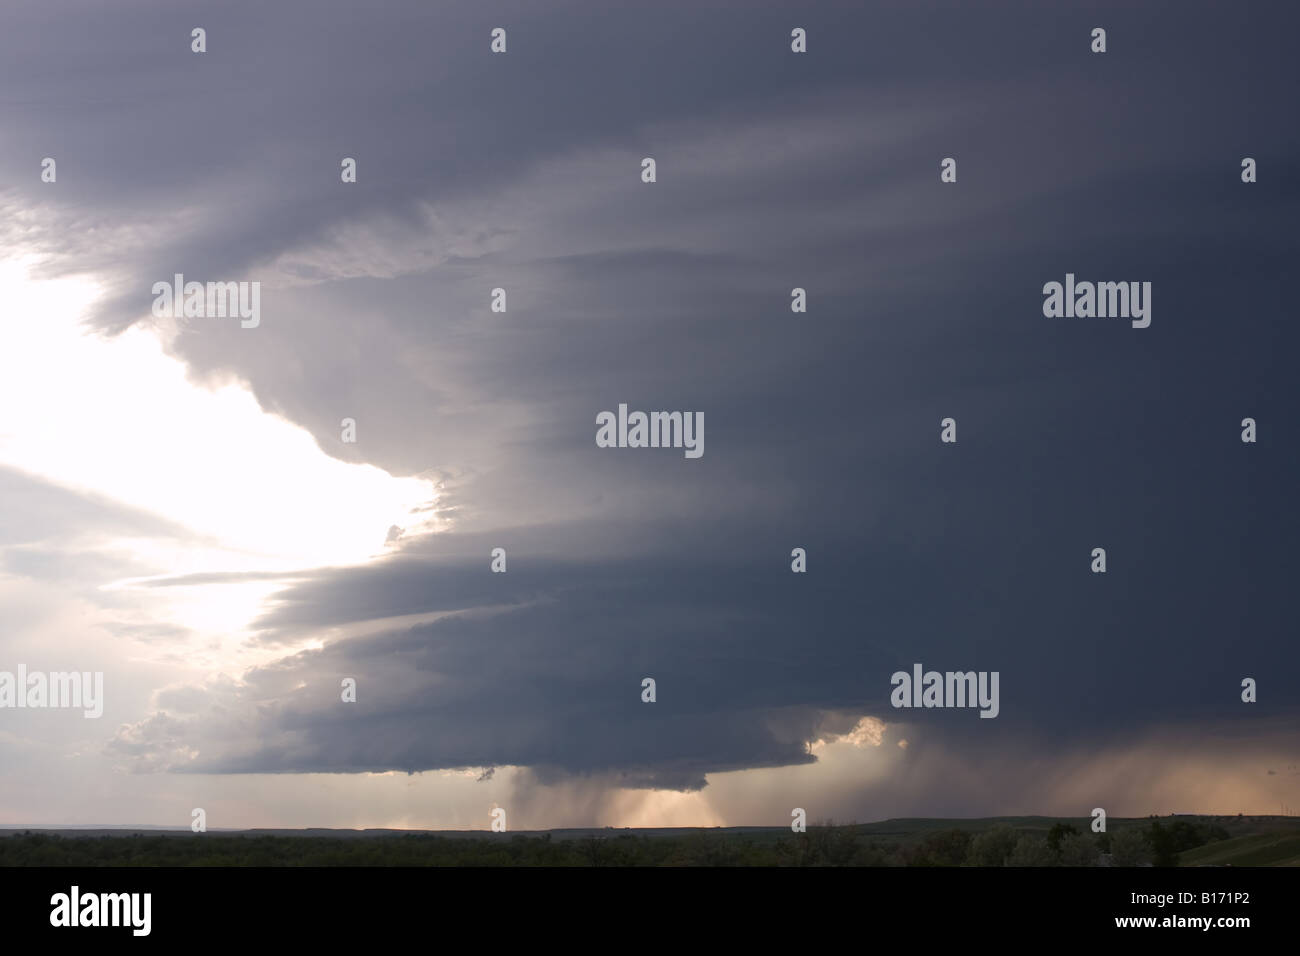 Evening cumulonimbus clouds with developing thunderstorm and rain with small funnel cloud in cumulus clouds in center - Stock Image